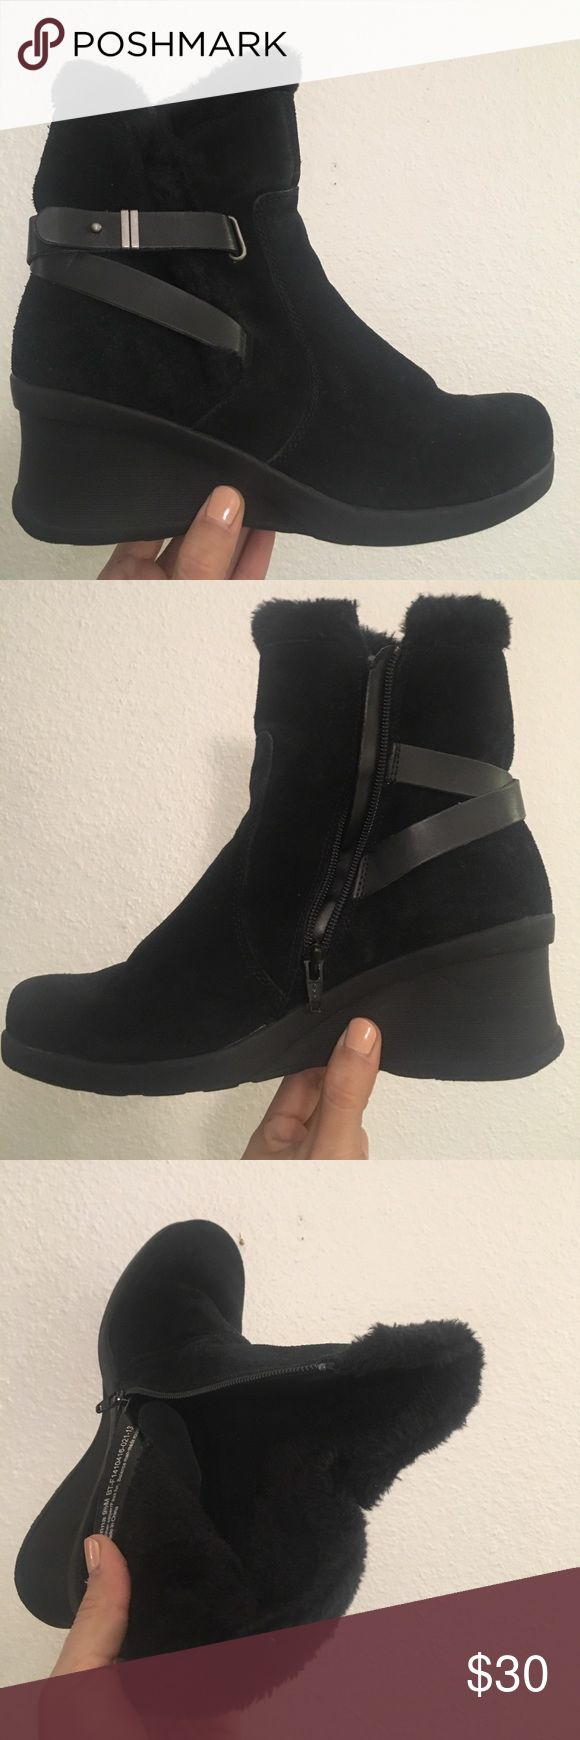 Winter wedge boot. Cute black wedge boots with straps and in great condition. Almost brand new! Comfortable! Size 9.5. bare traps  Shoes Ankle Boots & Booties